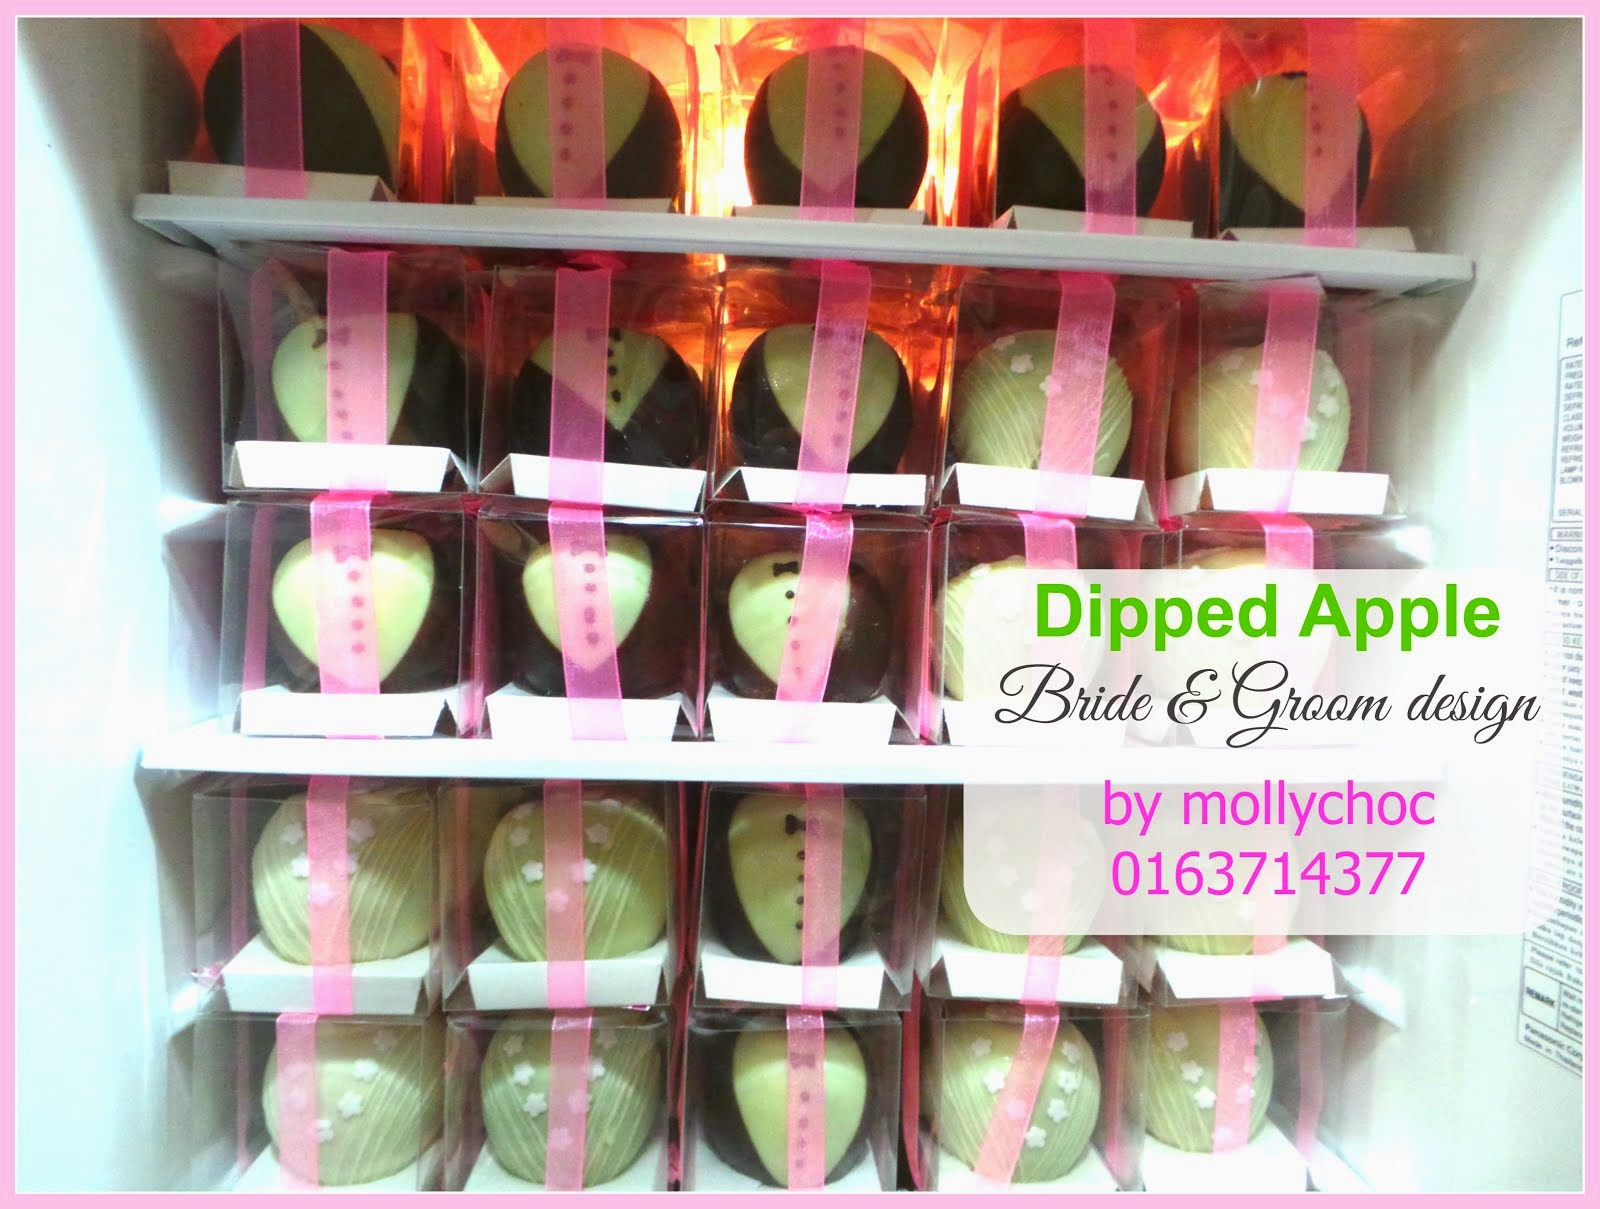 Dipped Apple - Bride & Groom